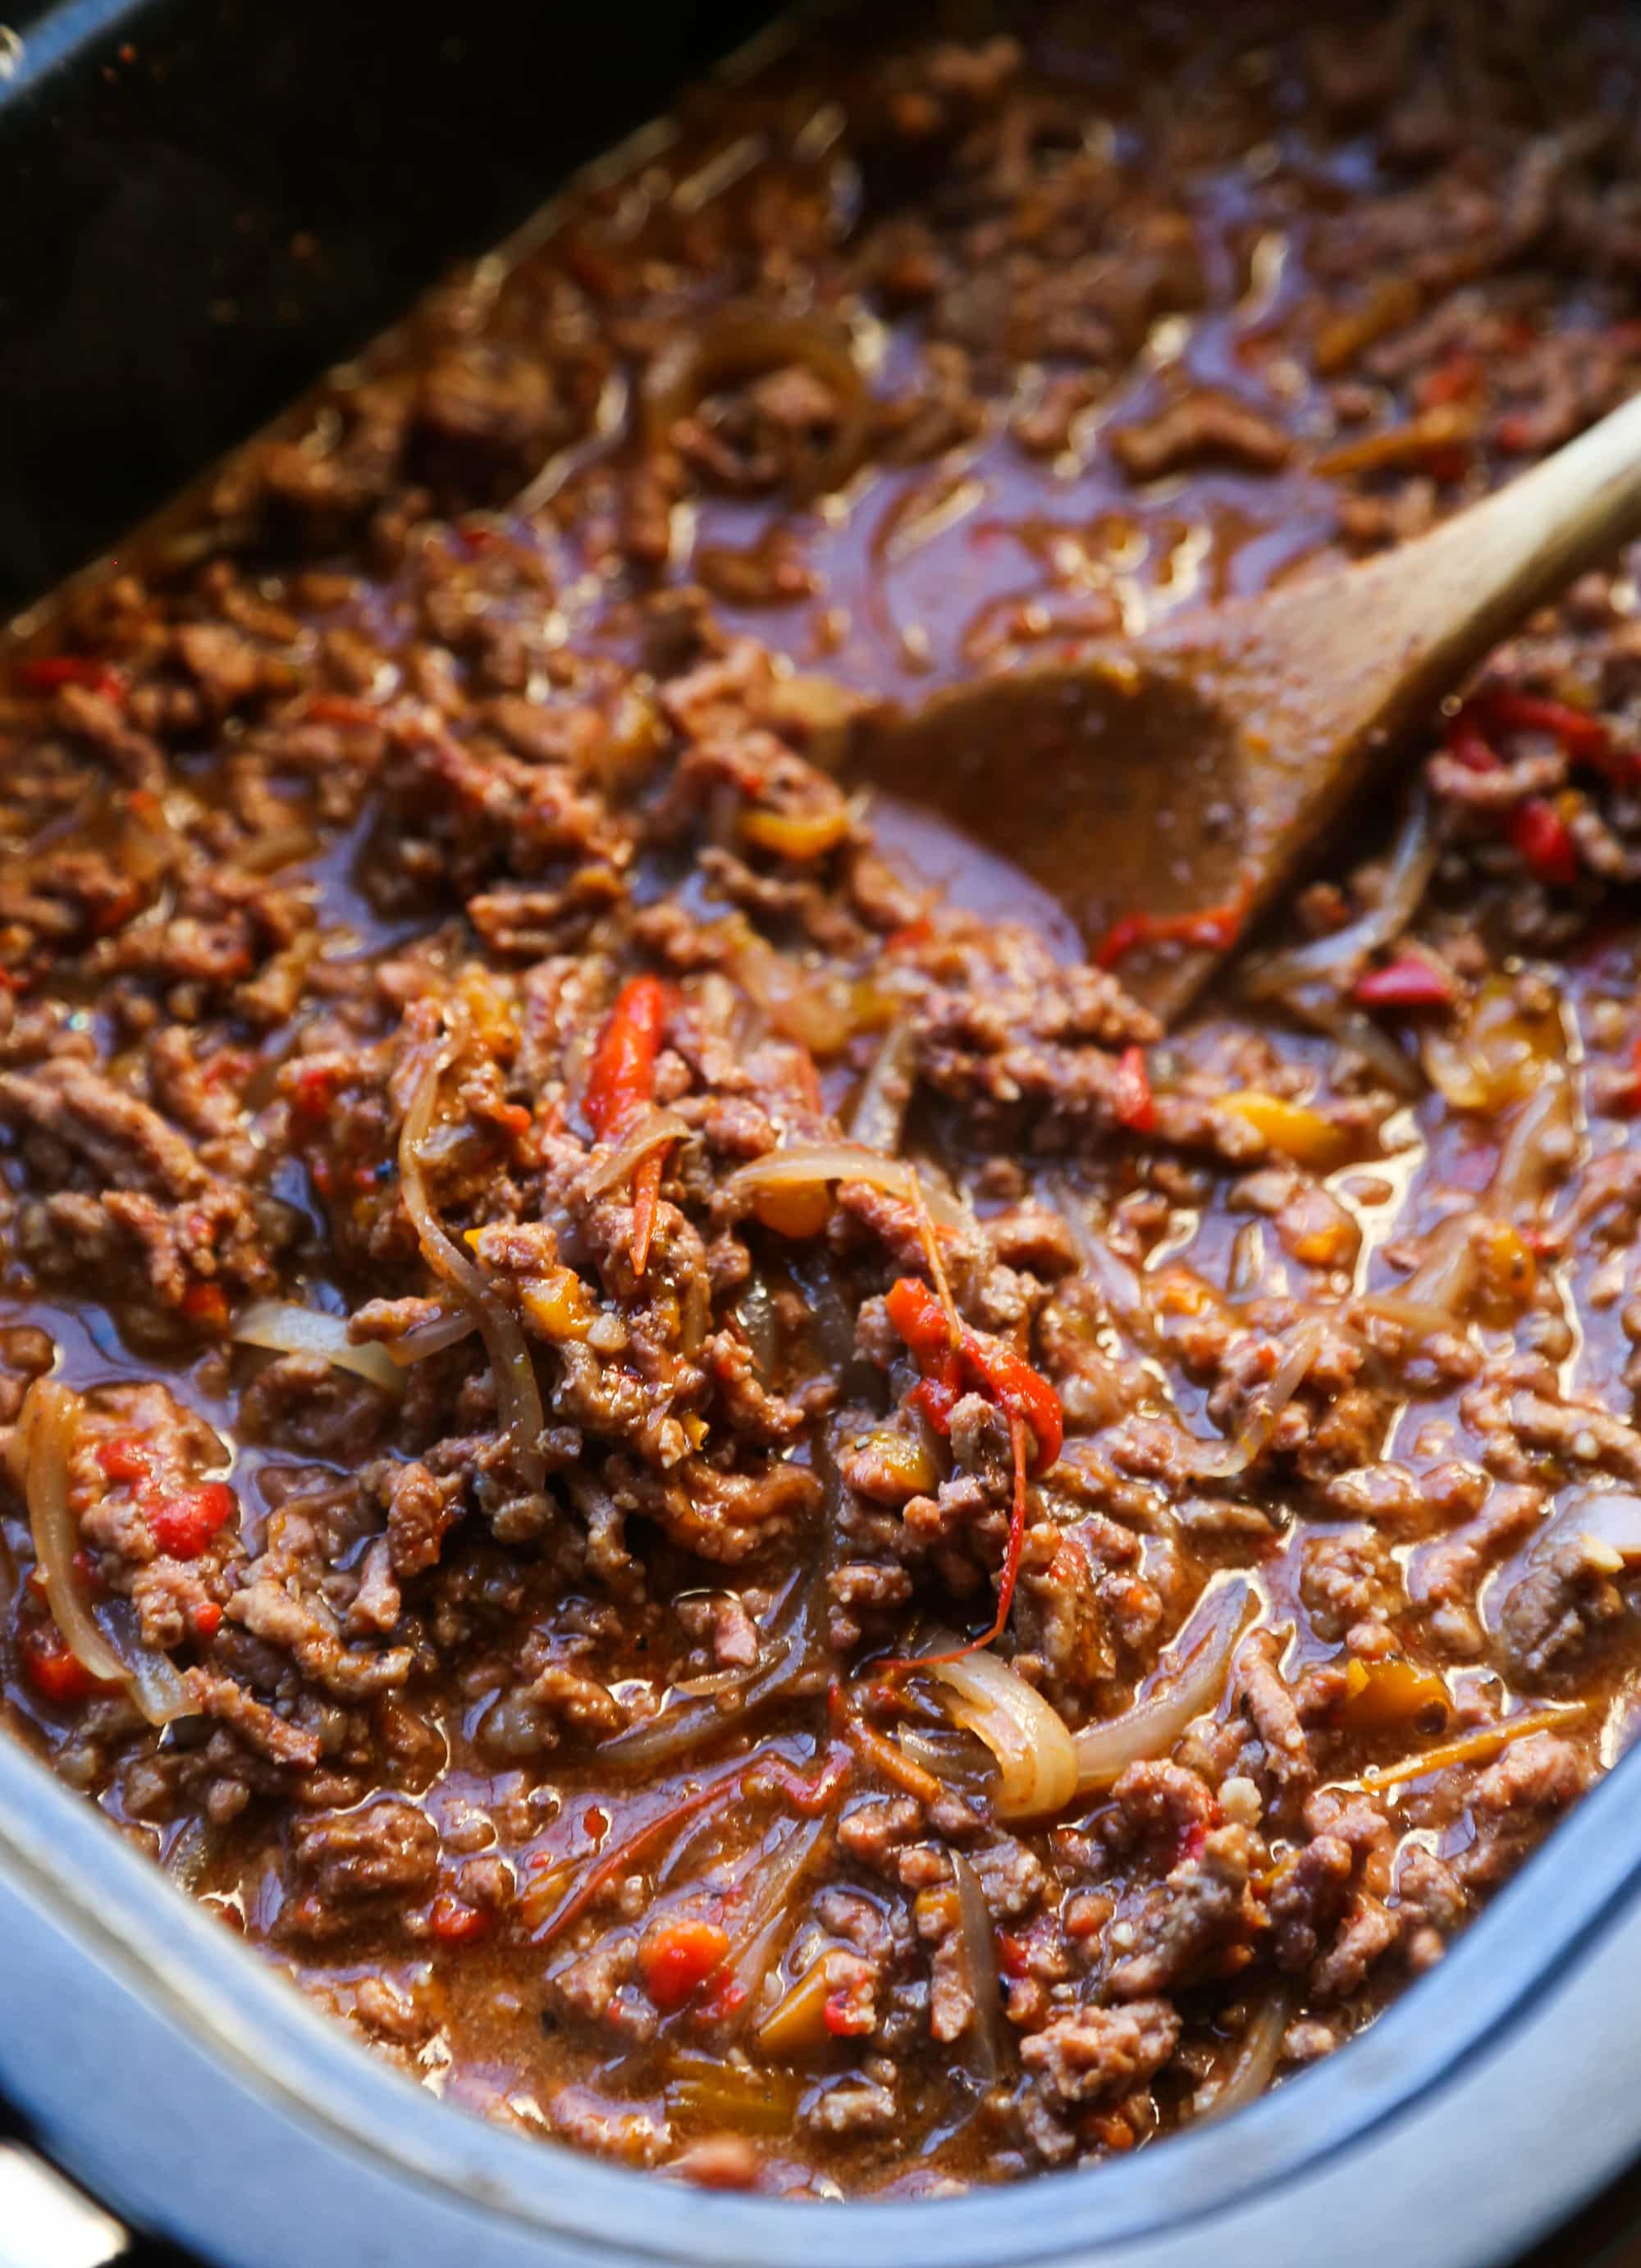 The ground beef sloppy joes mixture being mixed with a wooden spoon in a crock pot